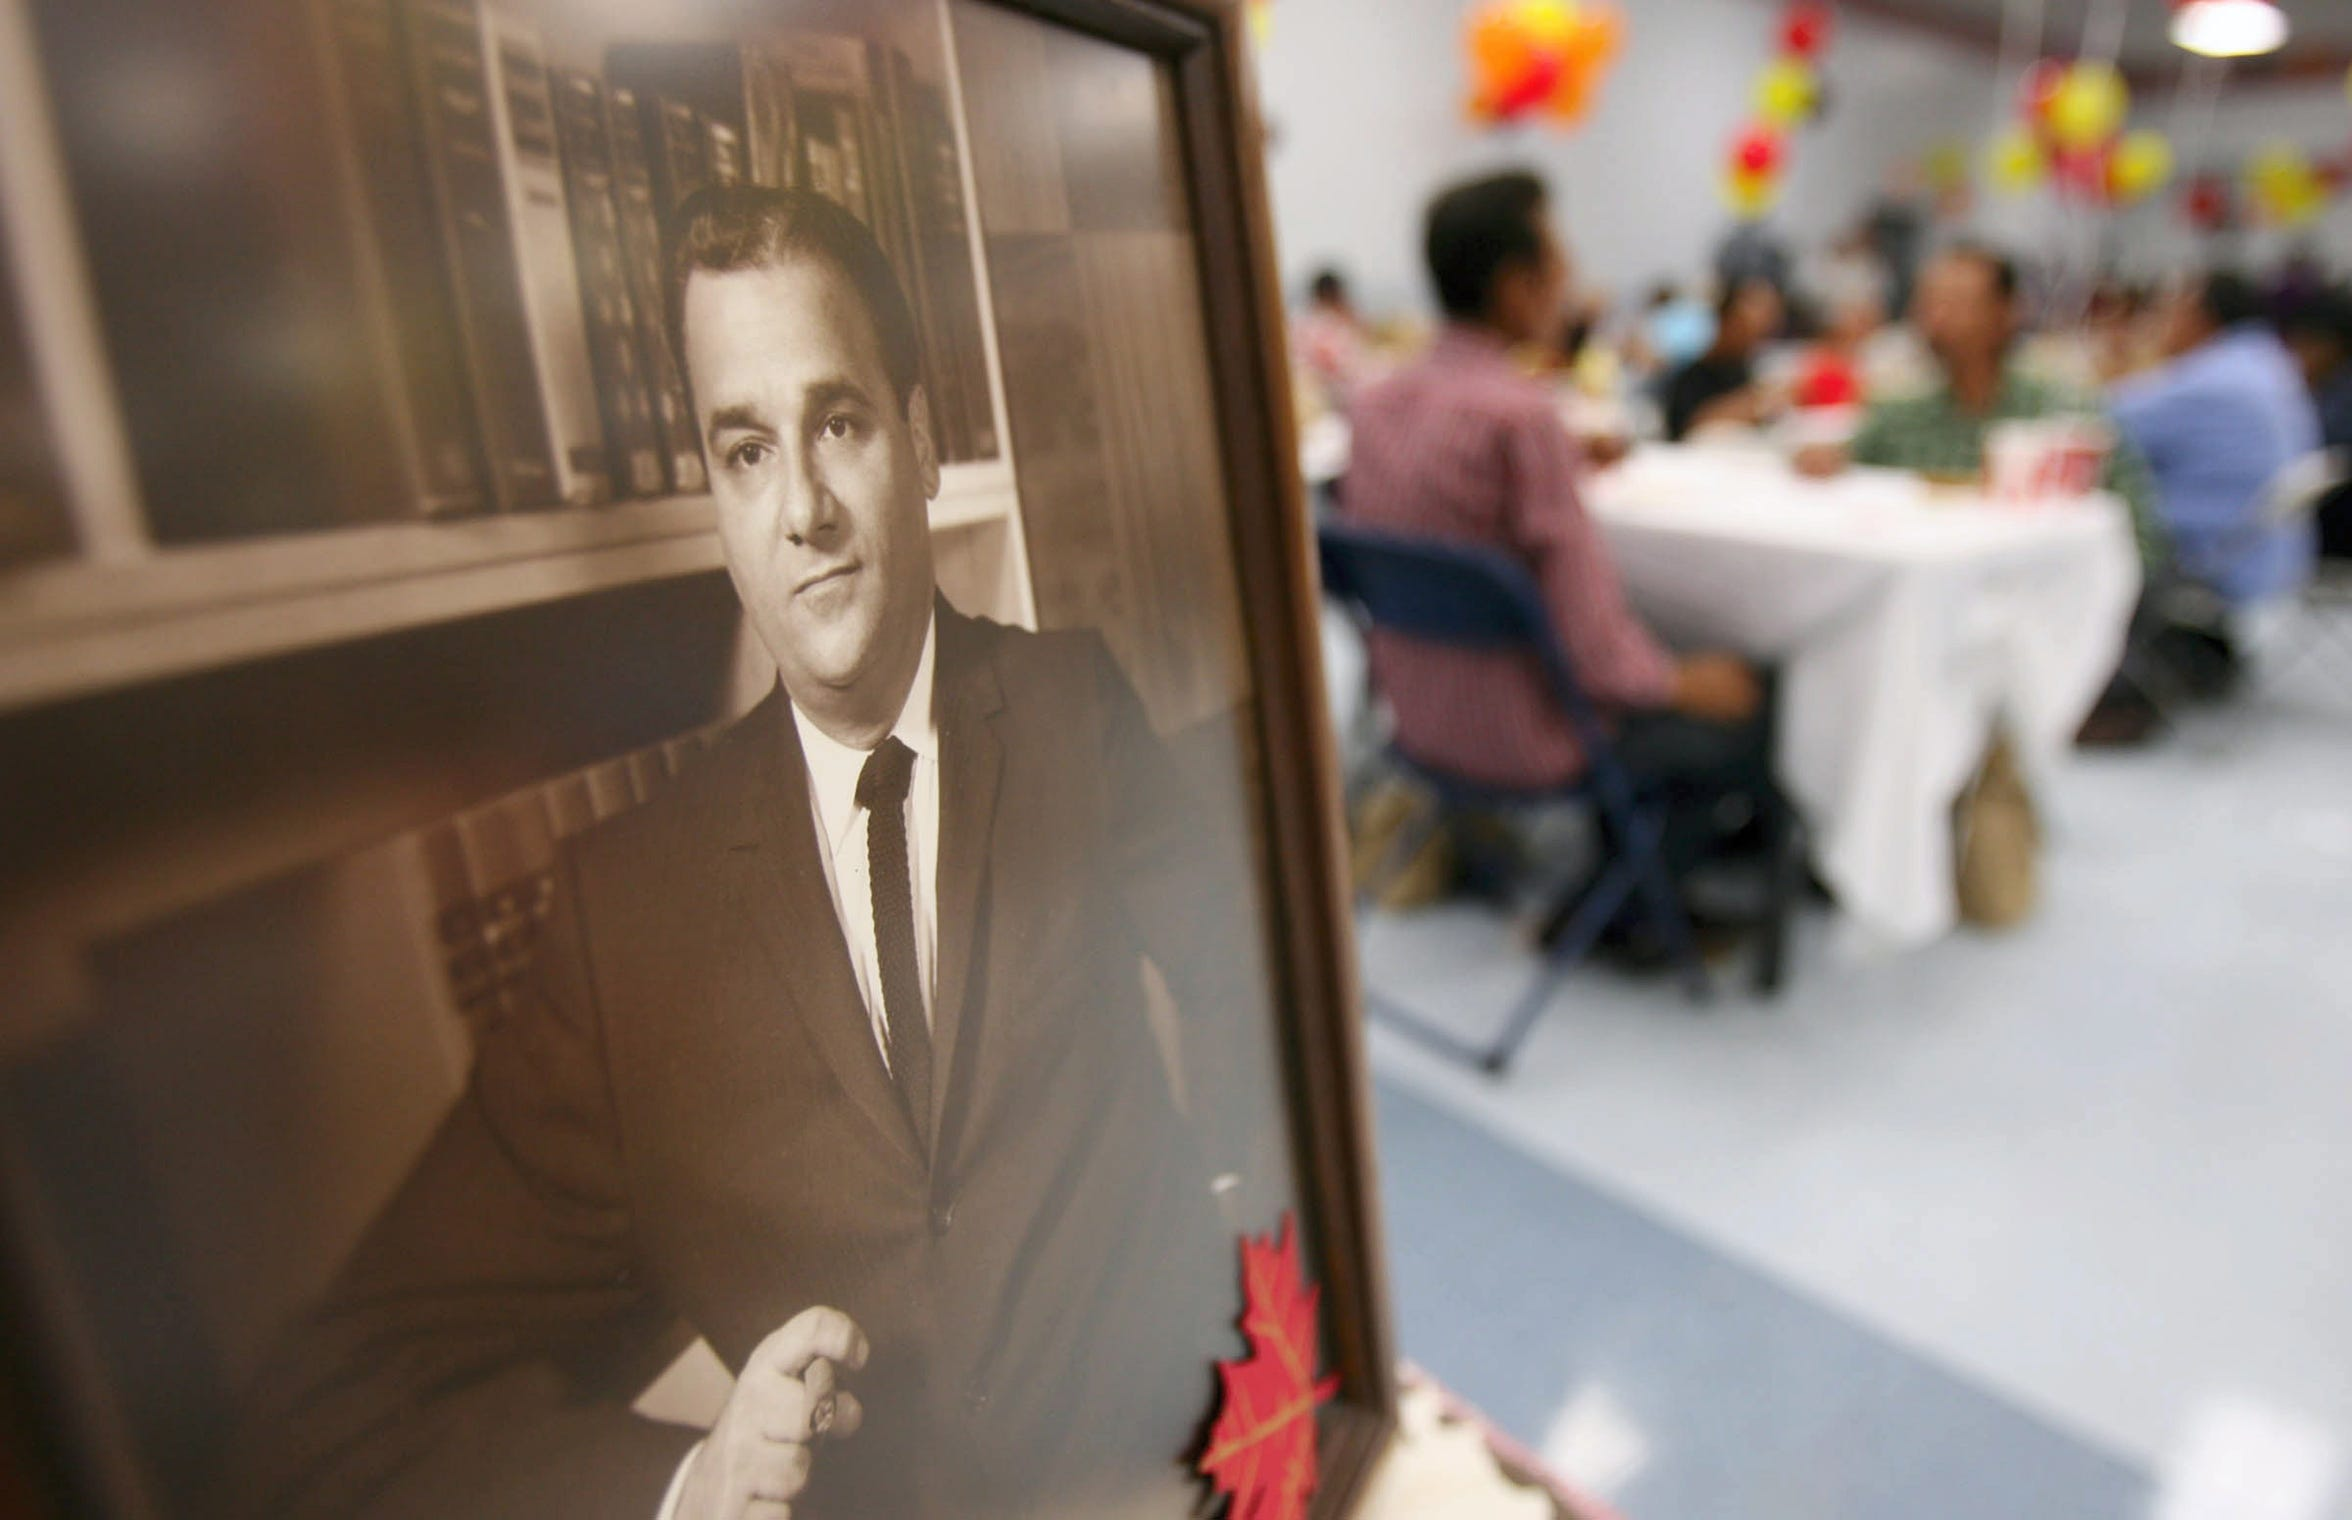 A portrait of Joe Salem watches over visitors and volunteers as they take part in the annual Thanksgiving dinner named in his honor Thursday, November 27, 2008 at the Greenwood Drive Boys and Girls Club of Corpus Christi.